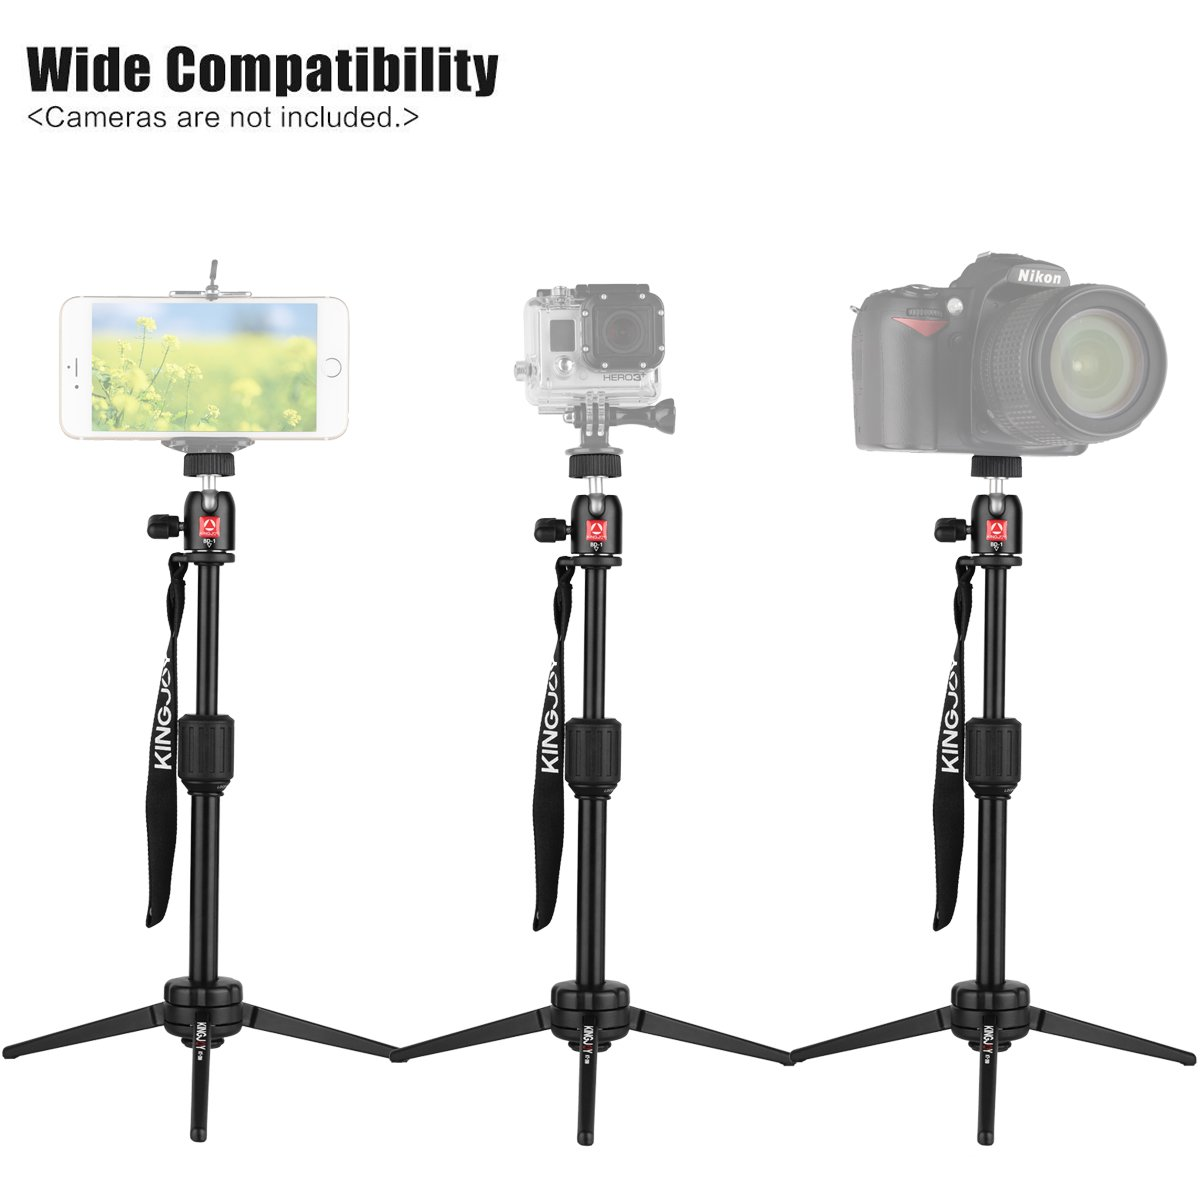 Kamisafe KINGJOY Portable Aluminum Alloy Mini Video Tabletop Tripod with Swivel Ball Head for GoPro Hero 4/3+/3, Smartphones, and Most DSLR Cameras with 1/4\